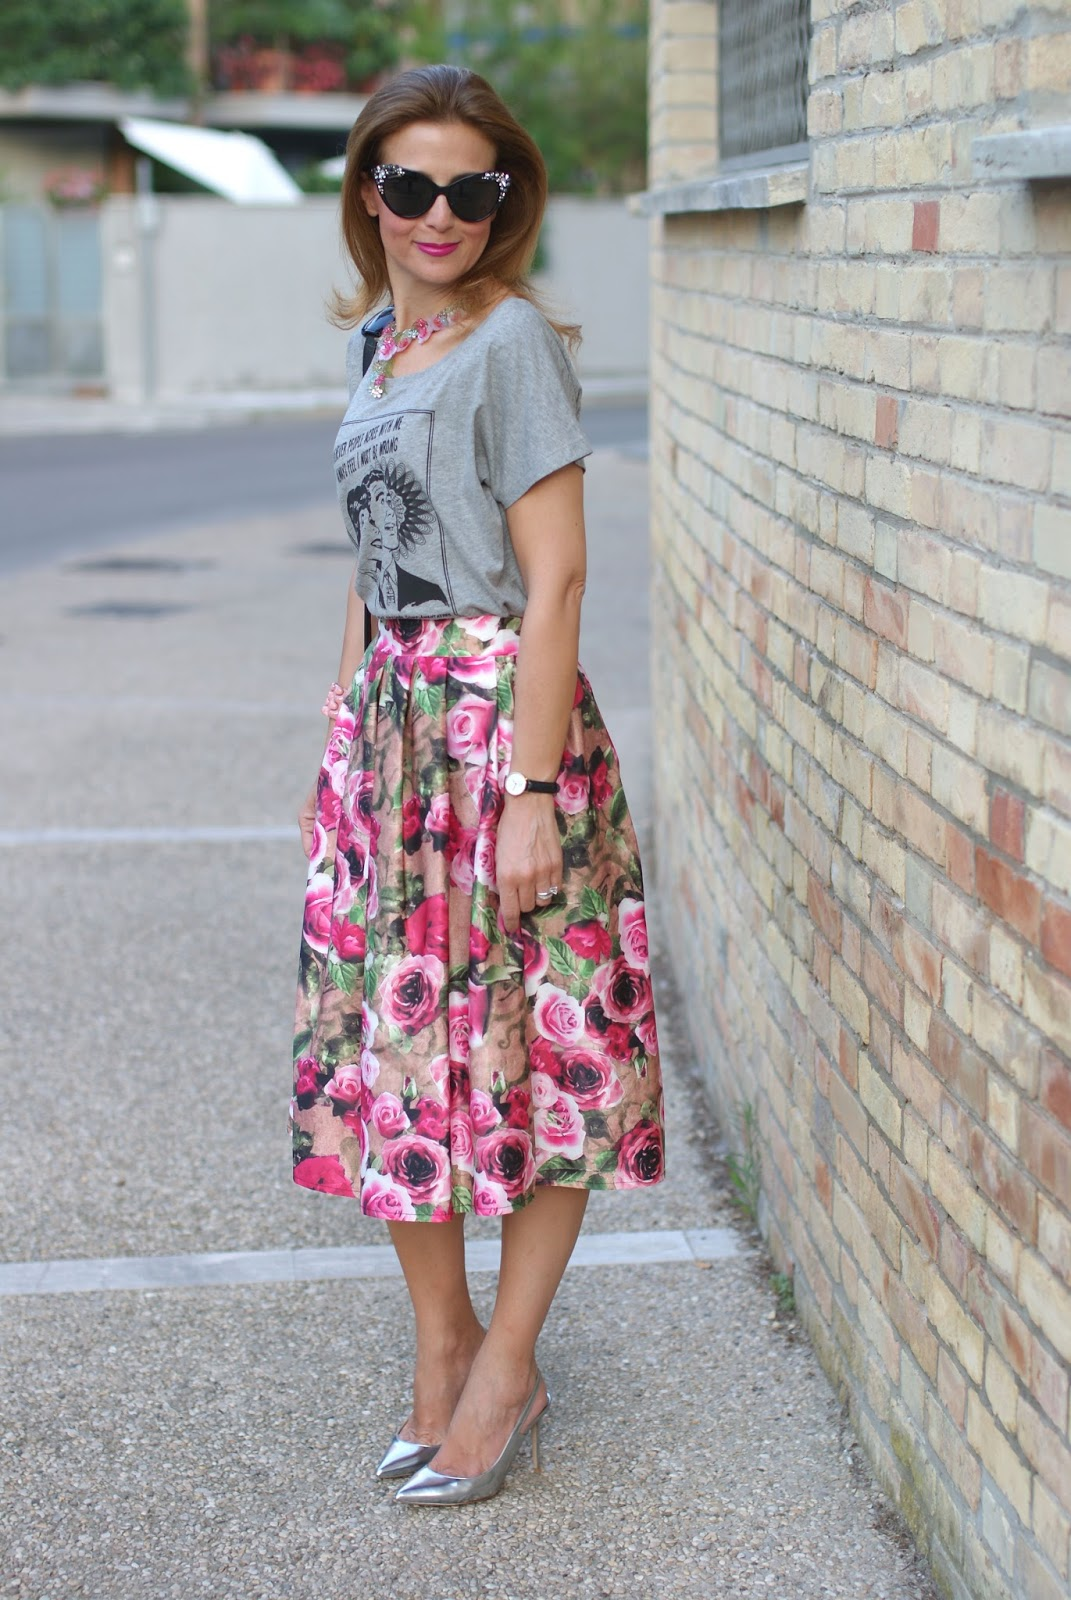 Opposes Complementaires t-shirt con midi skirt con rose su Fashion and Cookies fashion blog, fashion blogger style